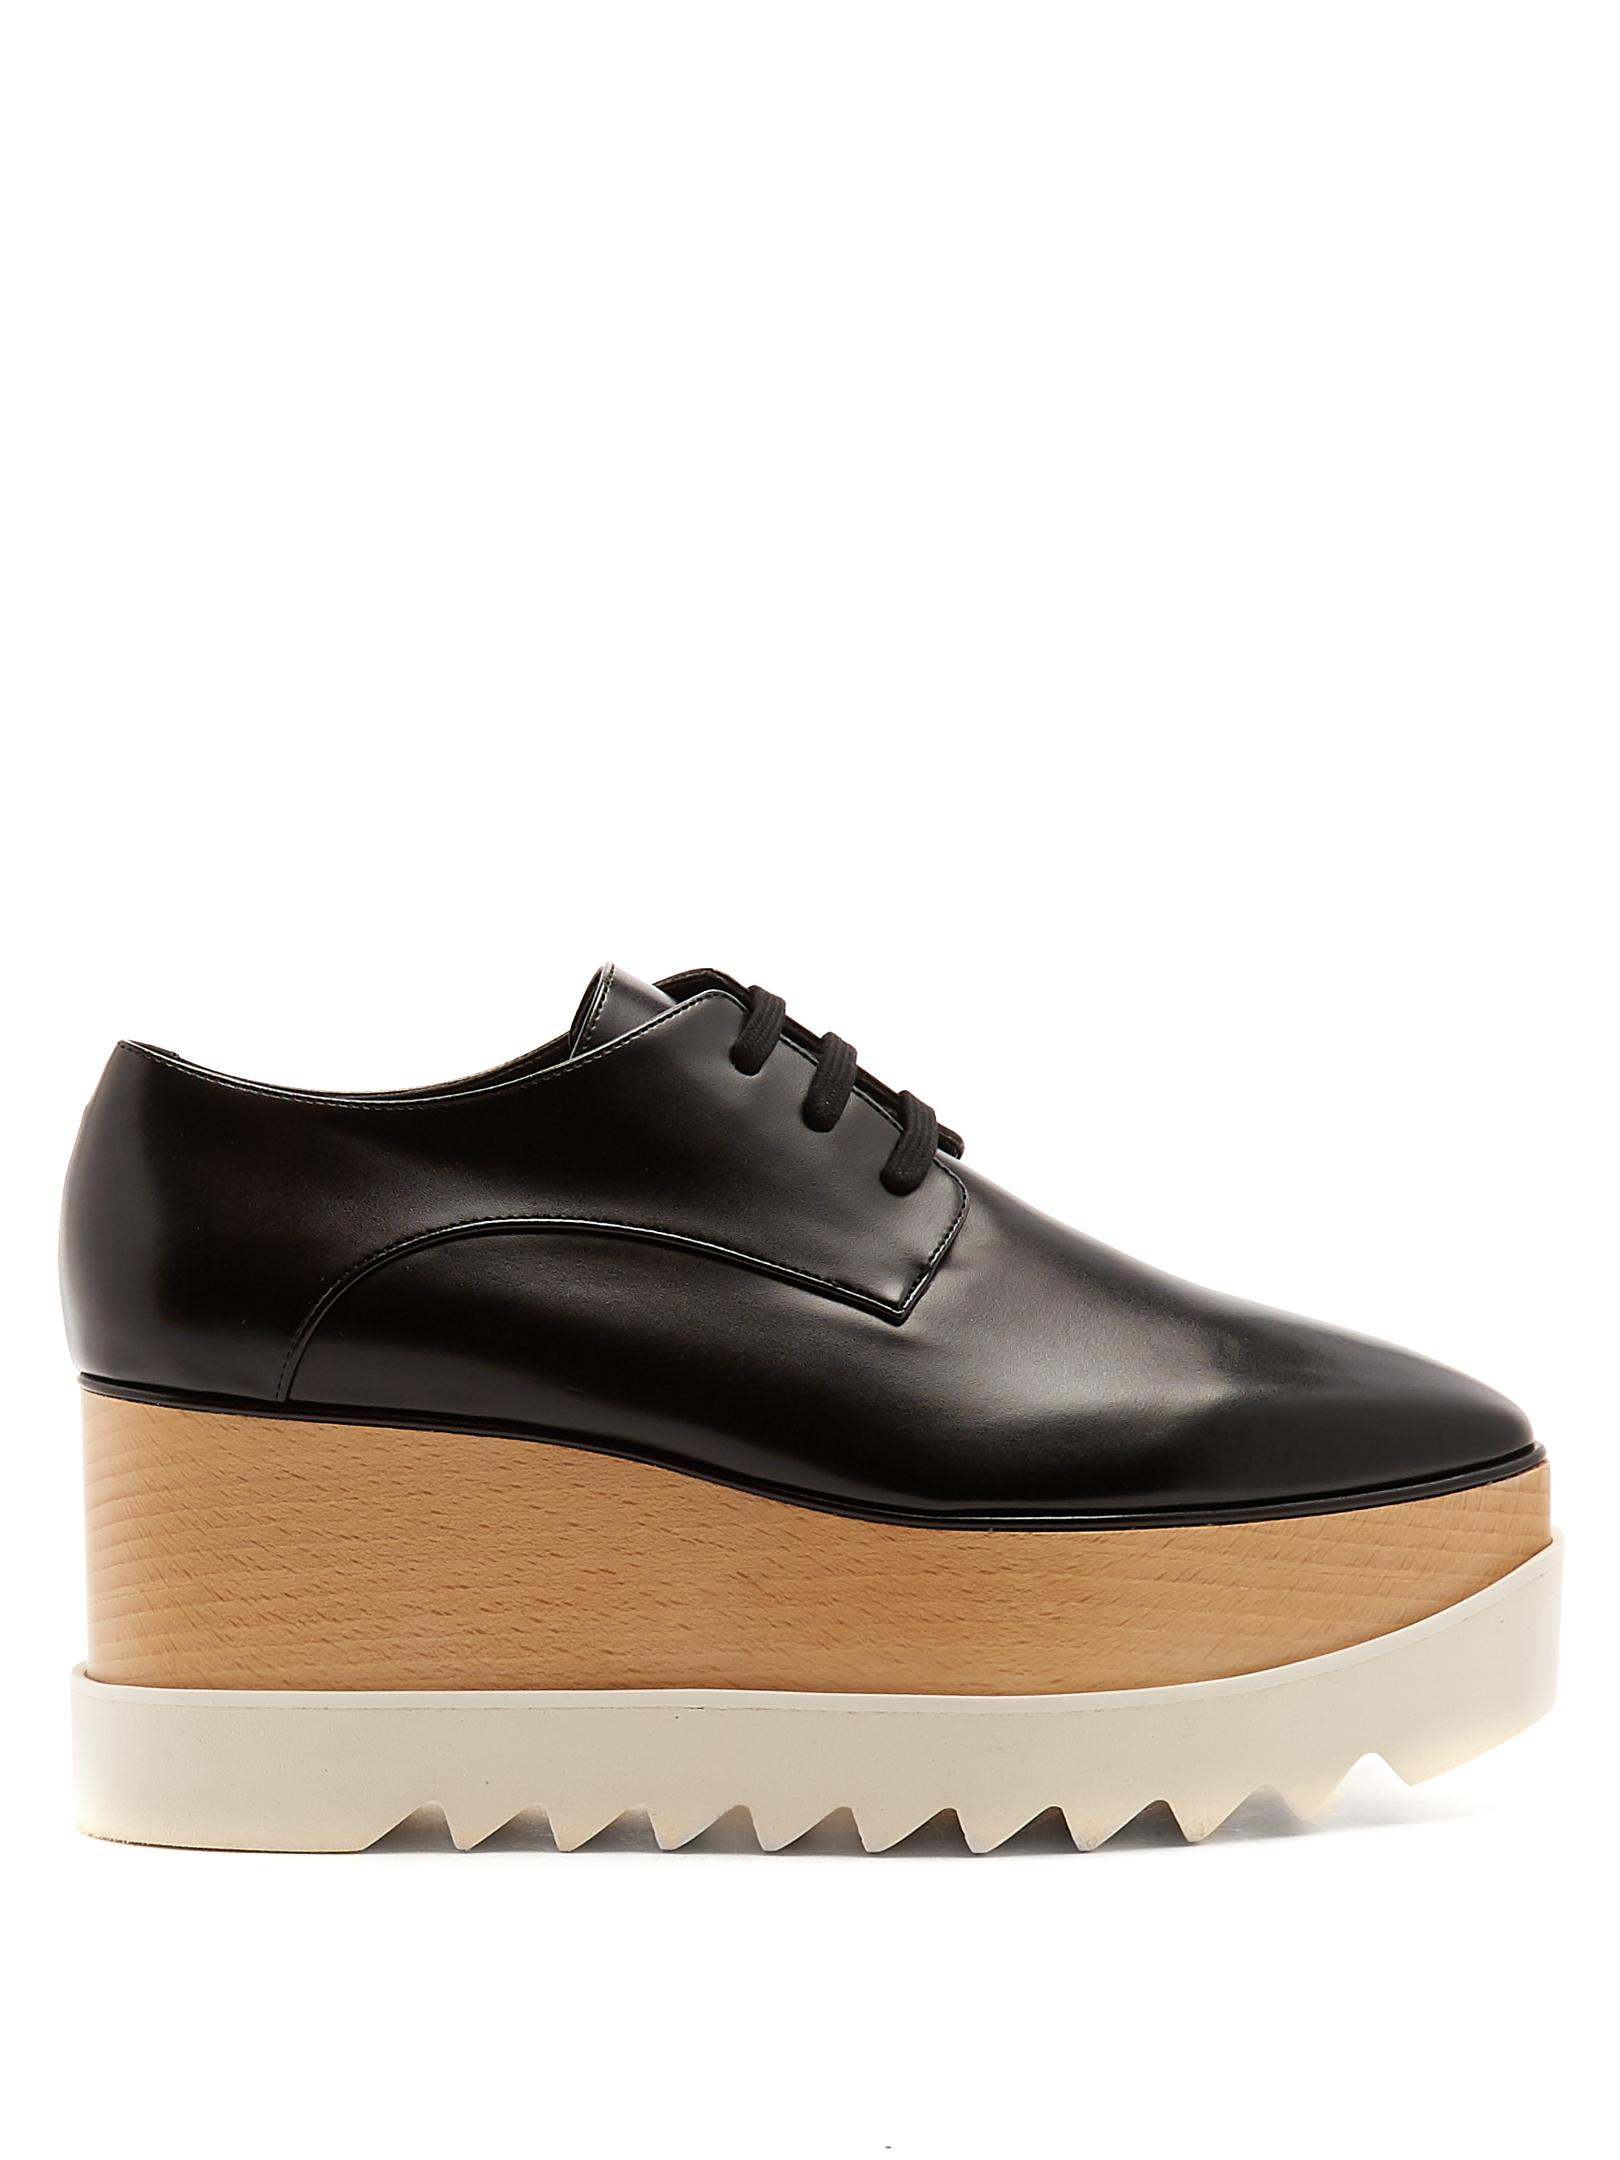 Elyse Shoes Price